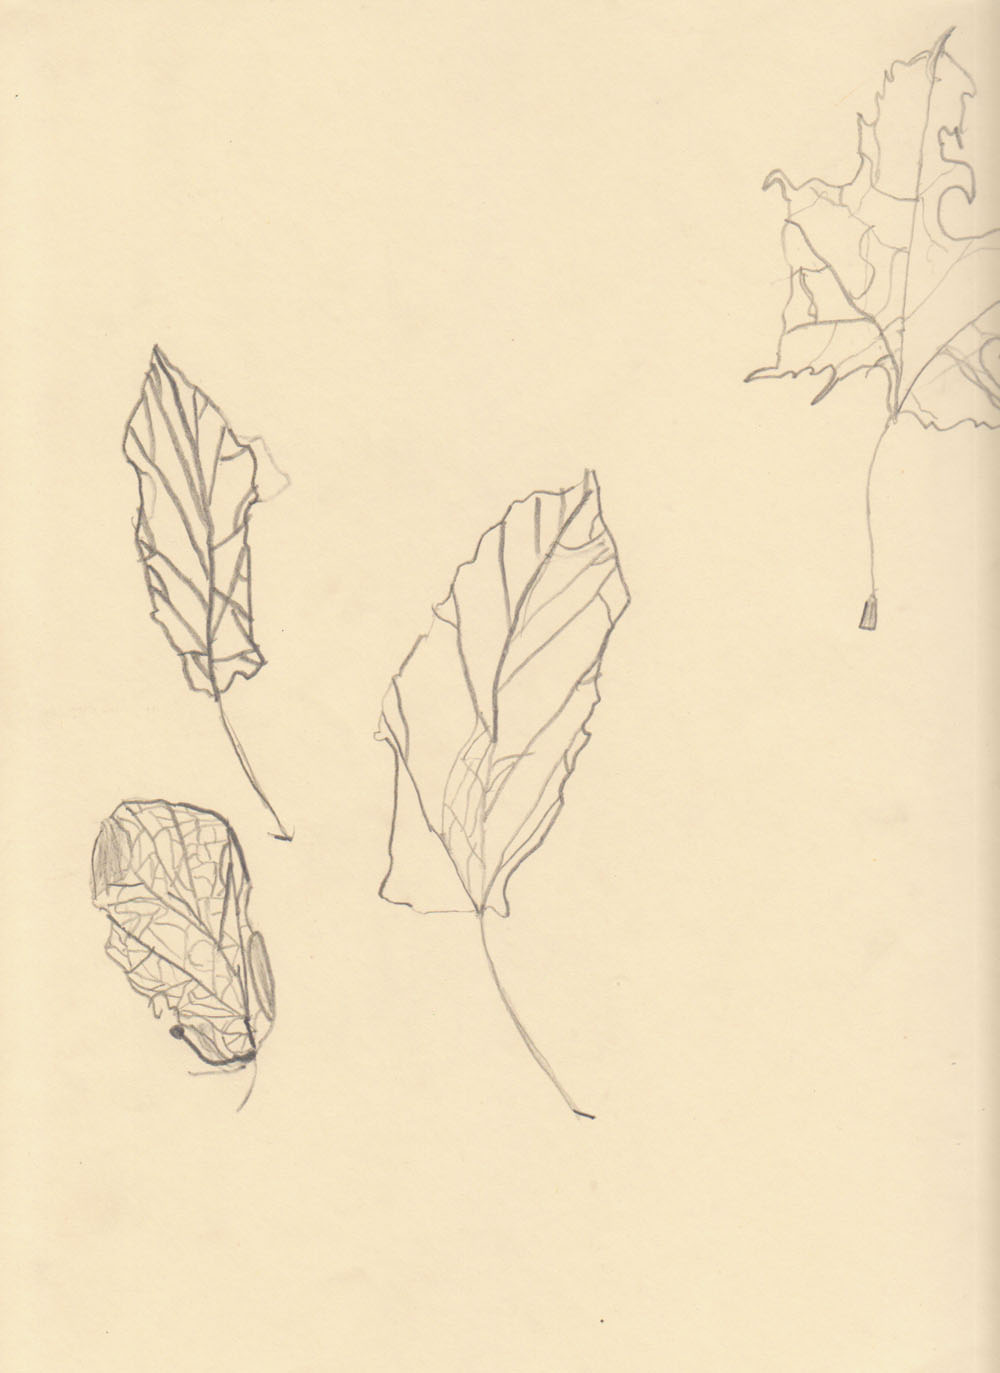 Contour Line Drawing Leaf : Th grade weeks studying nature using contour lines